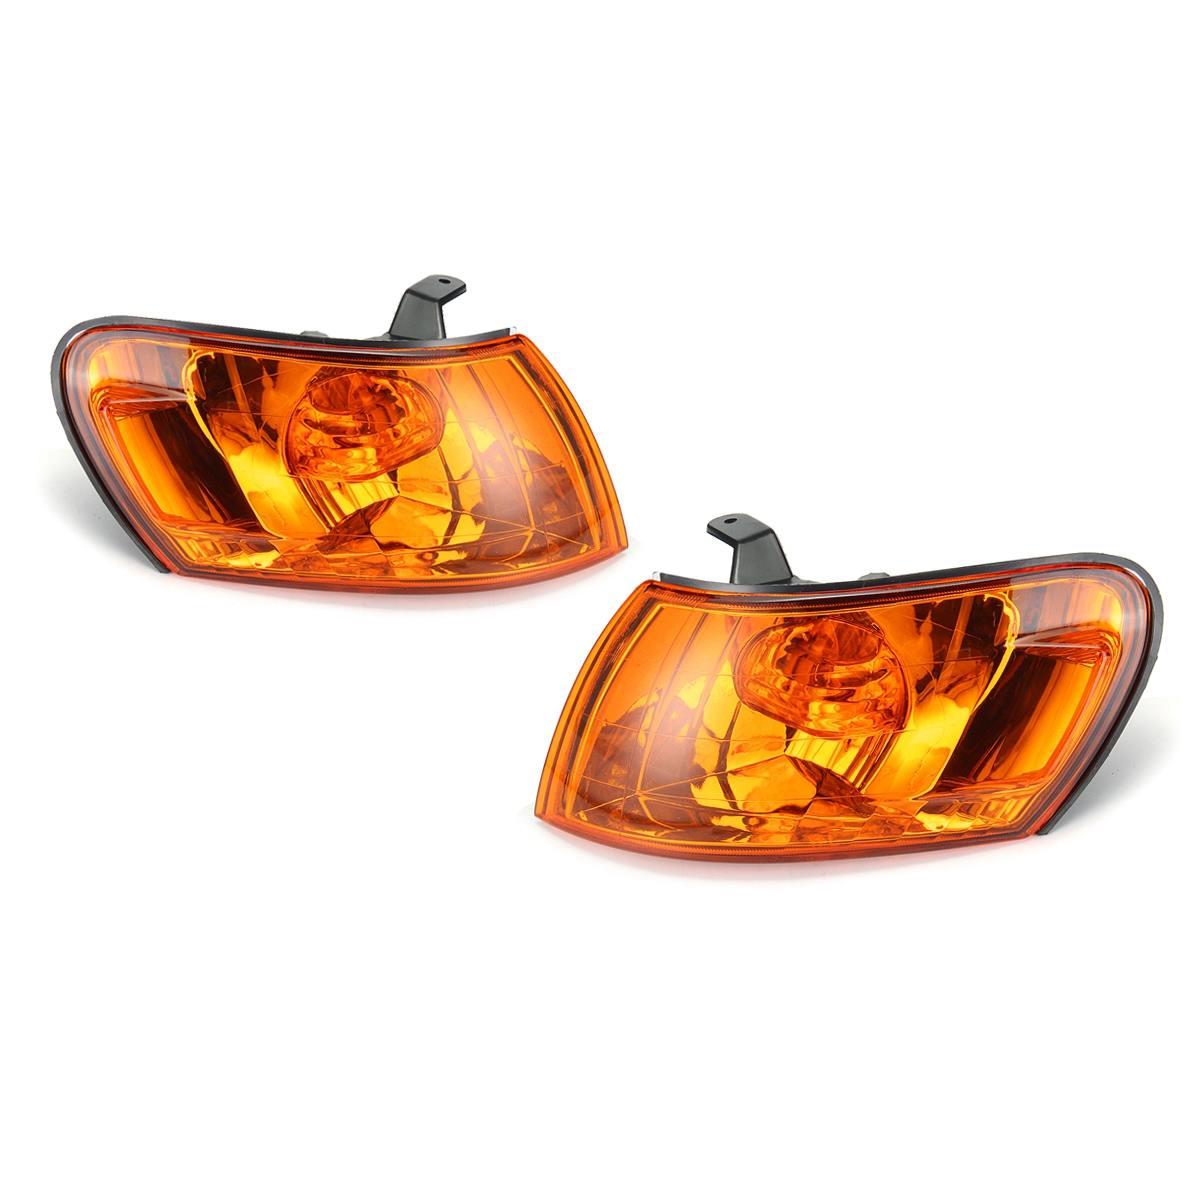 Pair Parking Corner Light Cover Amber Lens for <font><b>Toyota</b></font> <font><b>Corolla</b></font> AE100 <font><b>AE101</b></font> E100 1993 1994 1995 1996 1997 Signal Lamp Accessories image